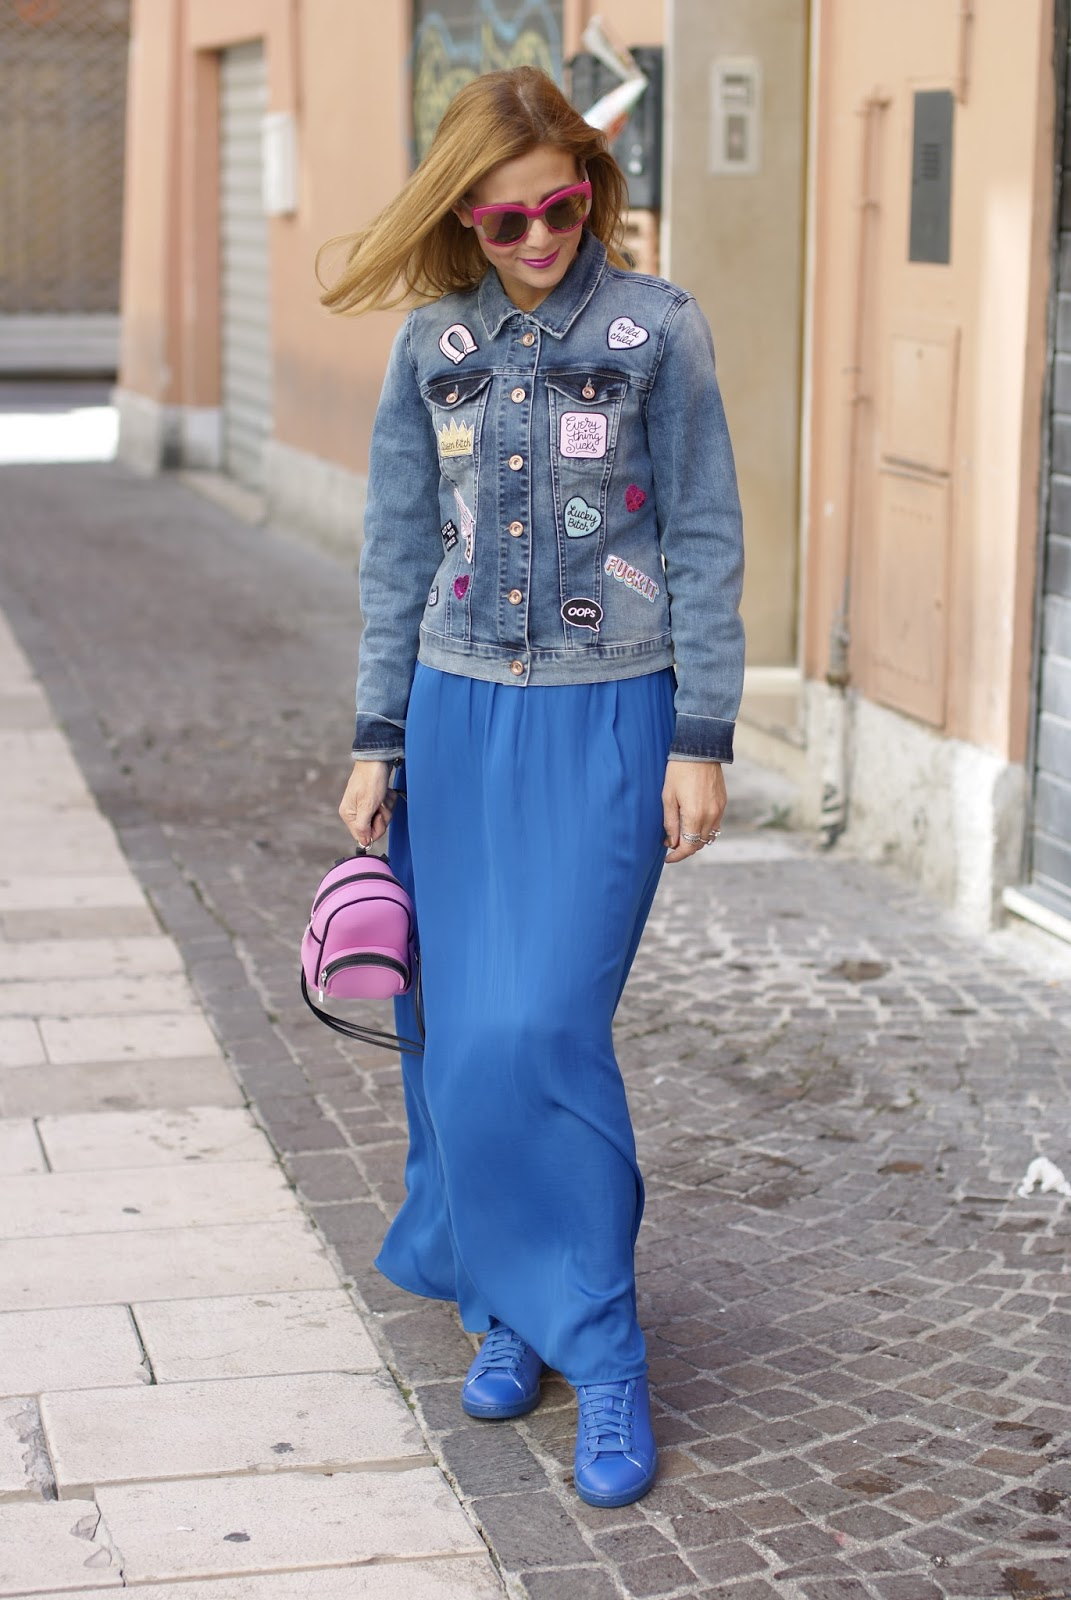 Mini zaino BABY Save My Bag e giacca jeans con toppe personalizzate su Fashion and Cookies fashion blog, fashion blogger style